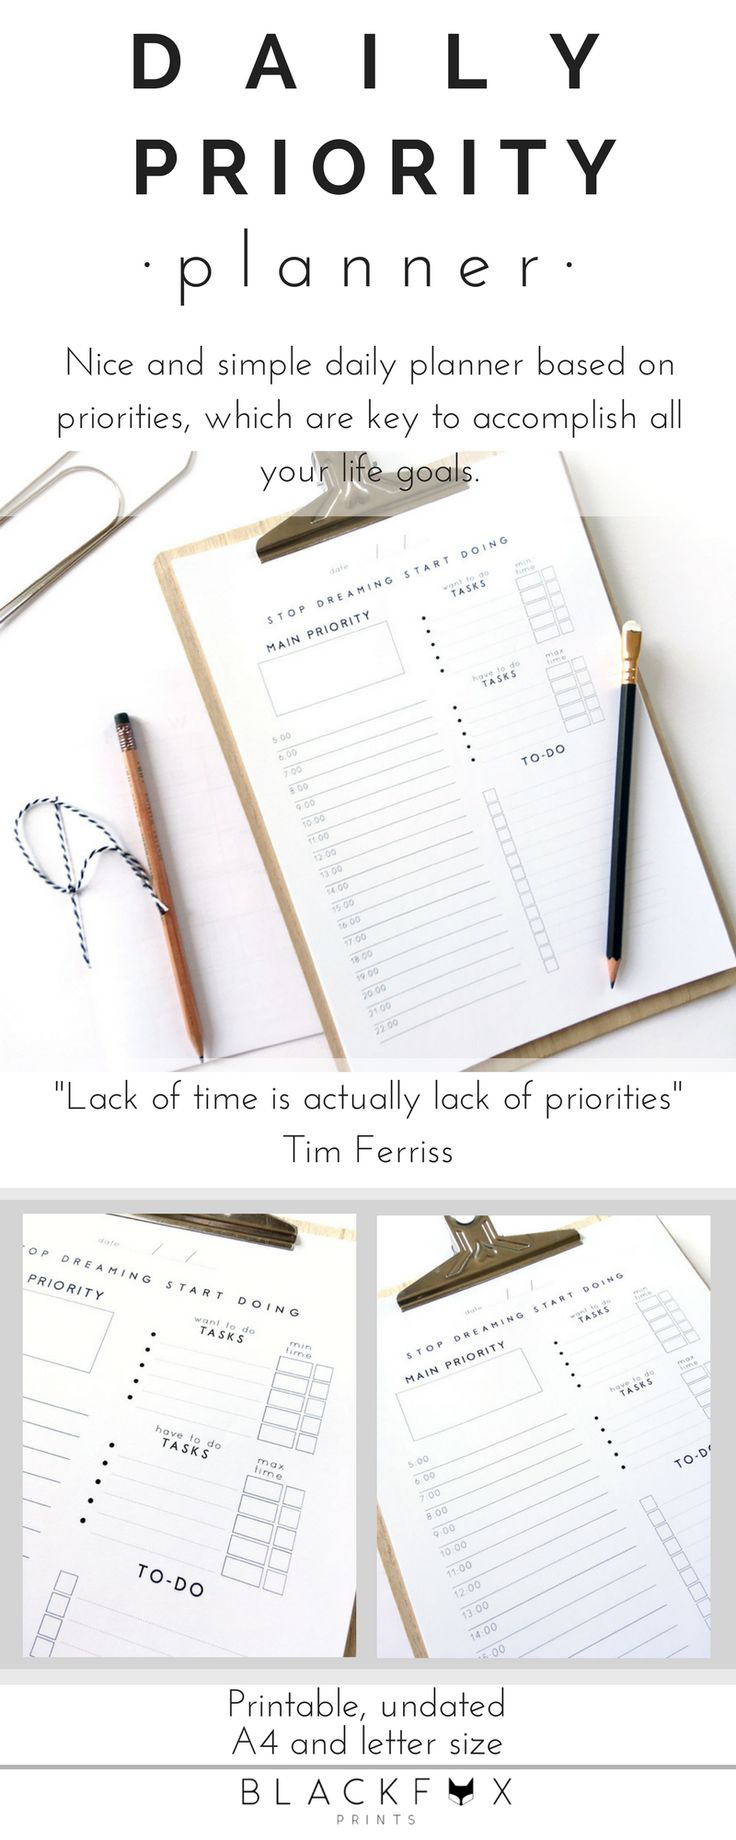 "Daily Priority Planner. Printable Planner Pages in A4 and letter size. Daily Planner Sheets. Nice and simple daily planner, undated planner, so print it as many times as you want. This planner is based on priorities. Just know your priorities and then include them in your daily plan and you will be unstoppable. ""Lack of time is actually lack of priorities"" Tim Ferriss."